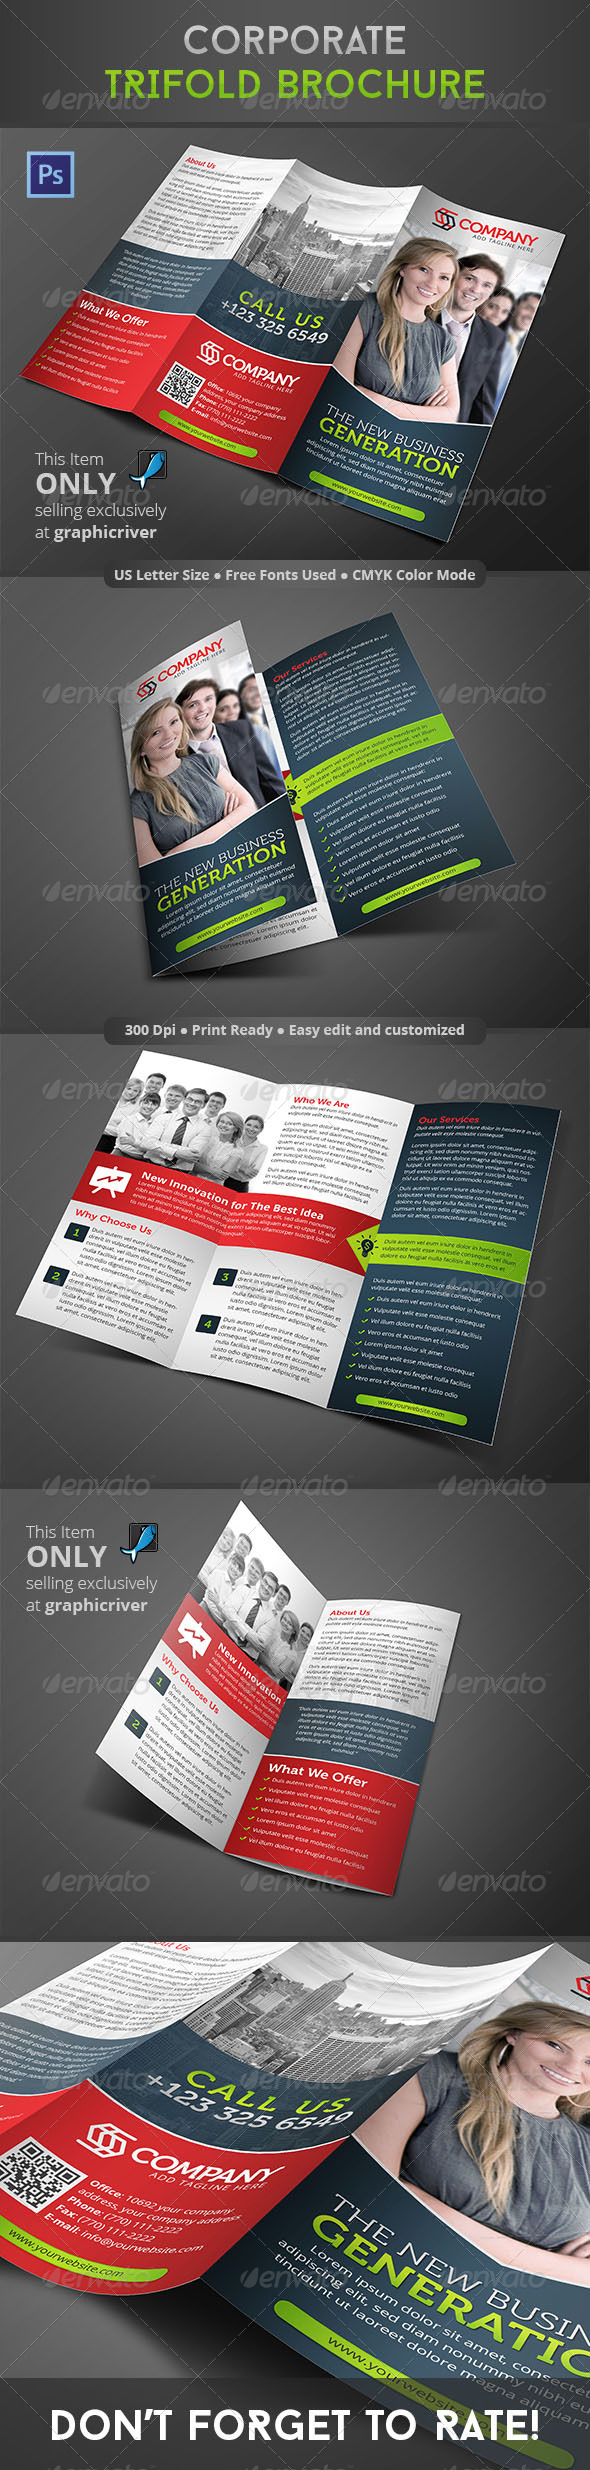 GraphicRiver Corporate Trifold Brochure 8646339